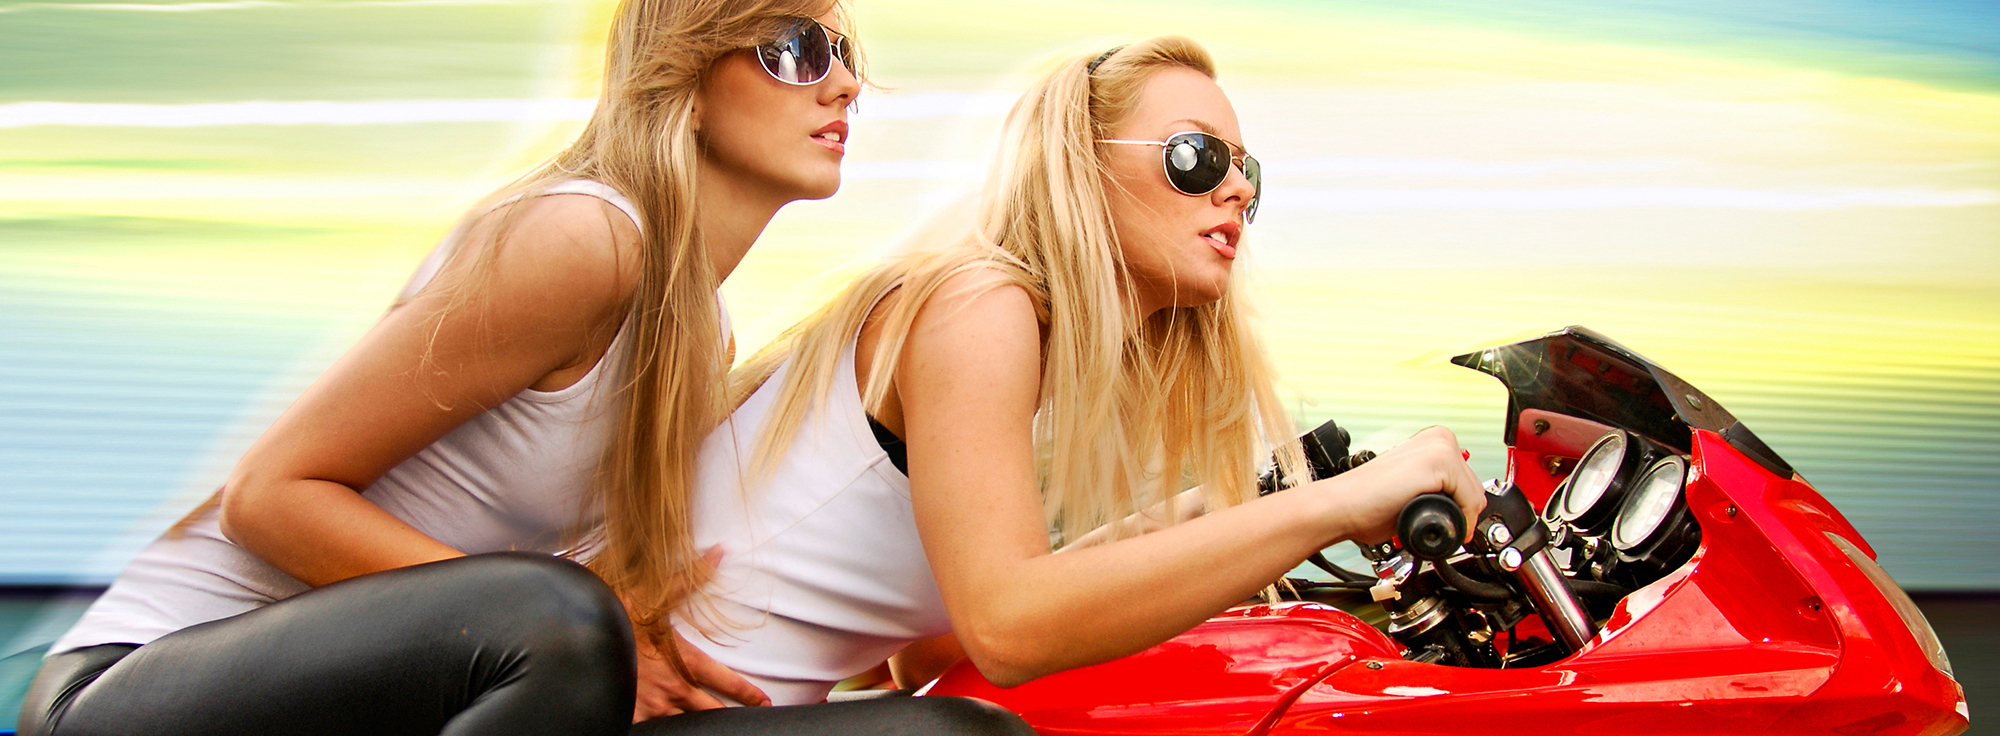 two blonde on a motorcycle